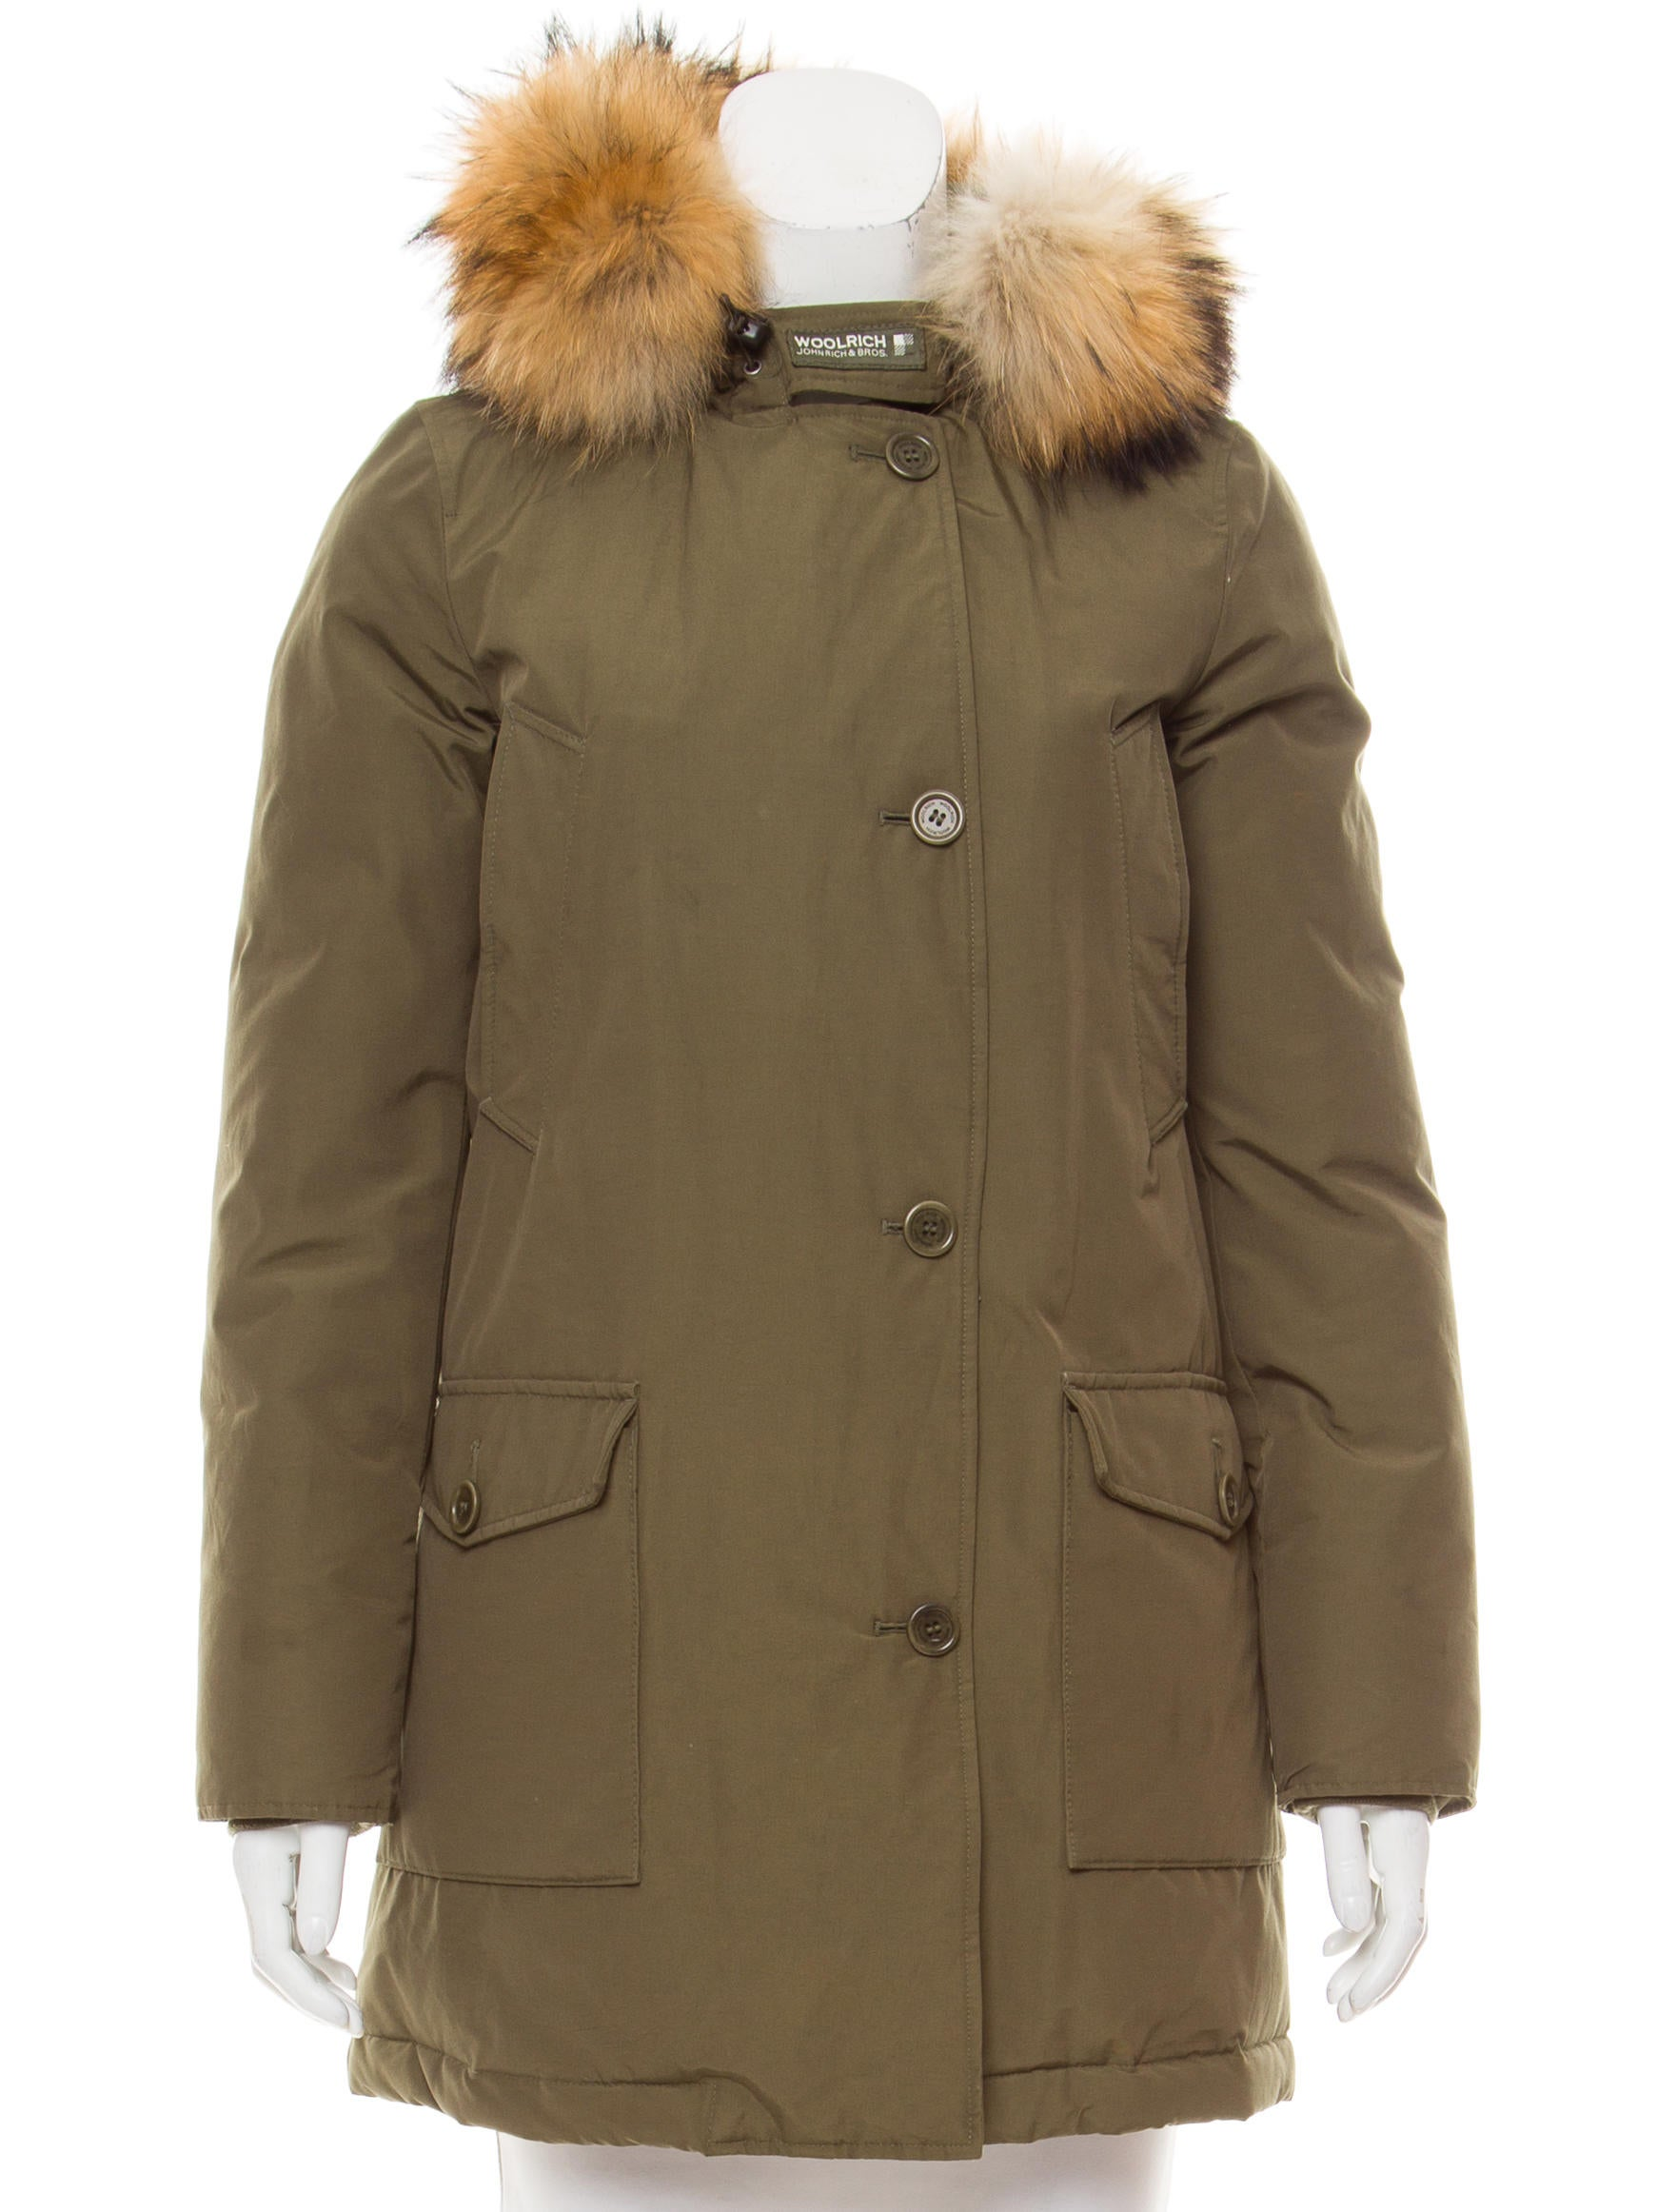 Visit inerloadsr5s.gq for the latest in designer leather jackets, wools coats, down coats & trenches for men & women.